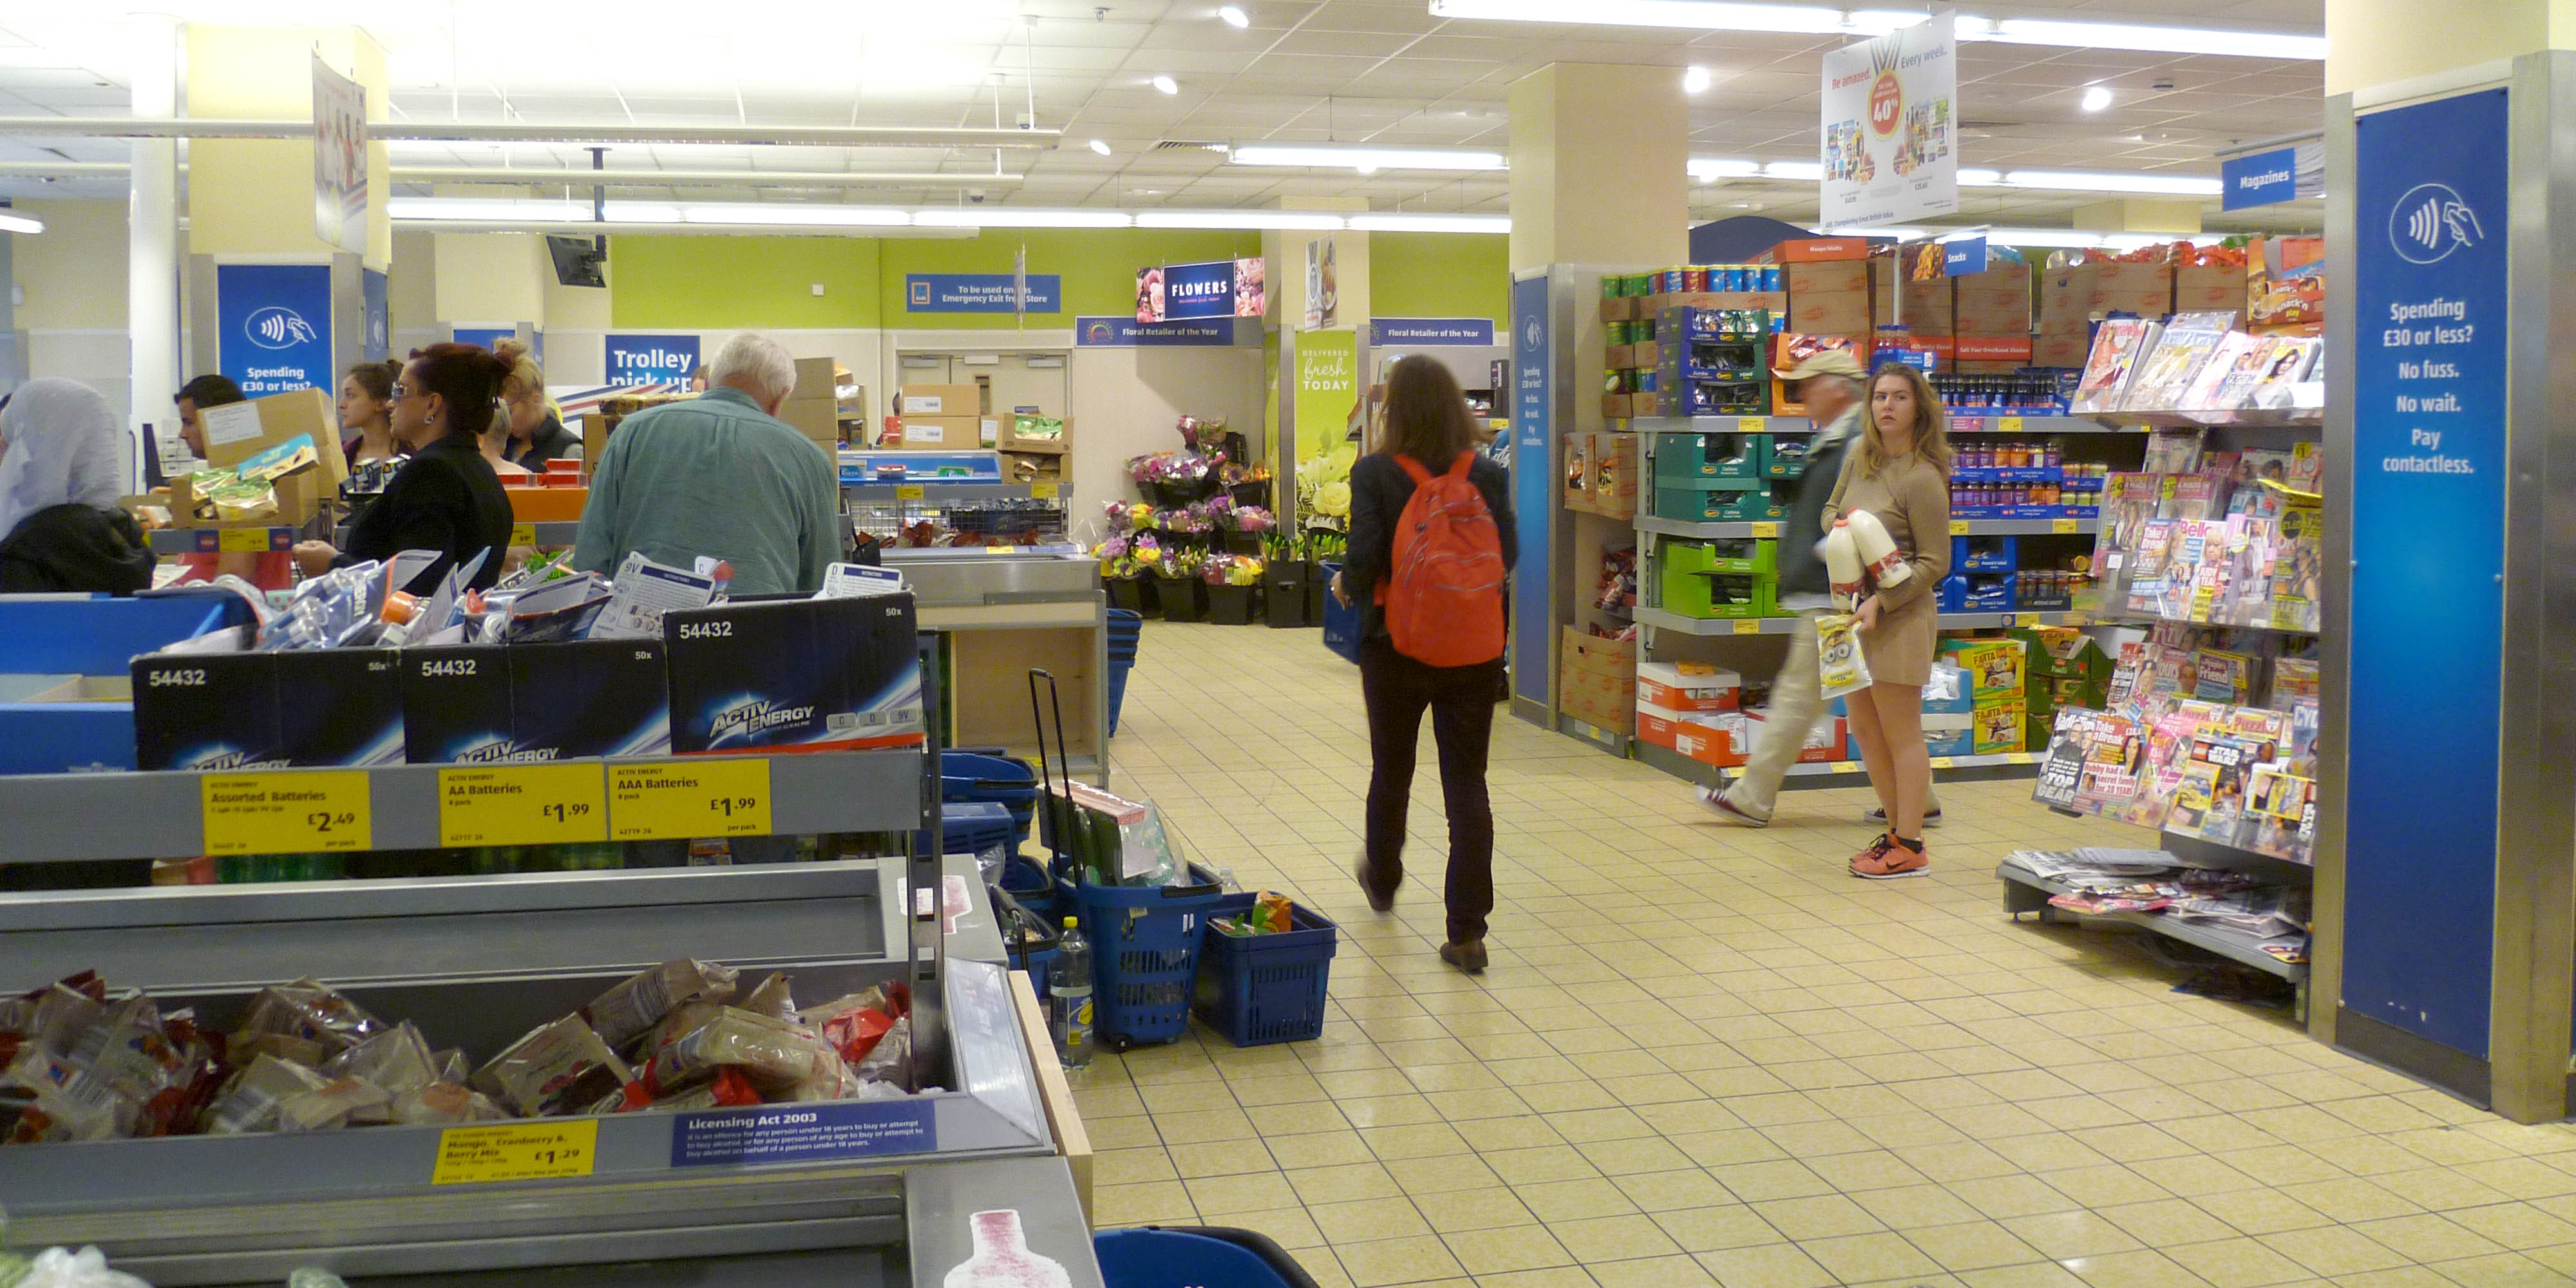 Aldi store, North Finchley. Photo: Wikimedia Commons